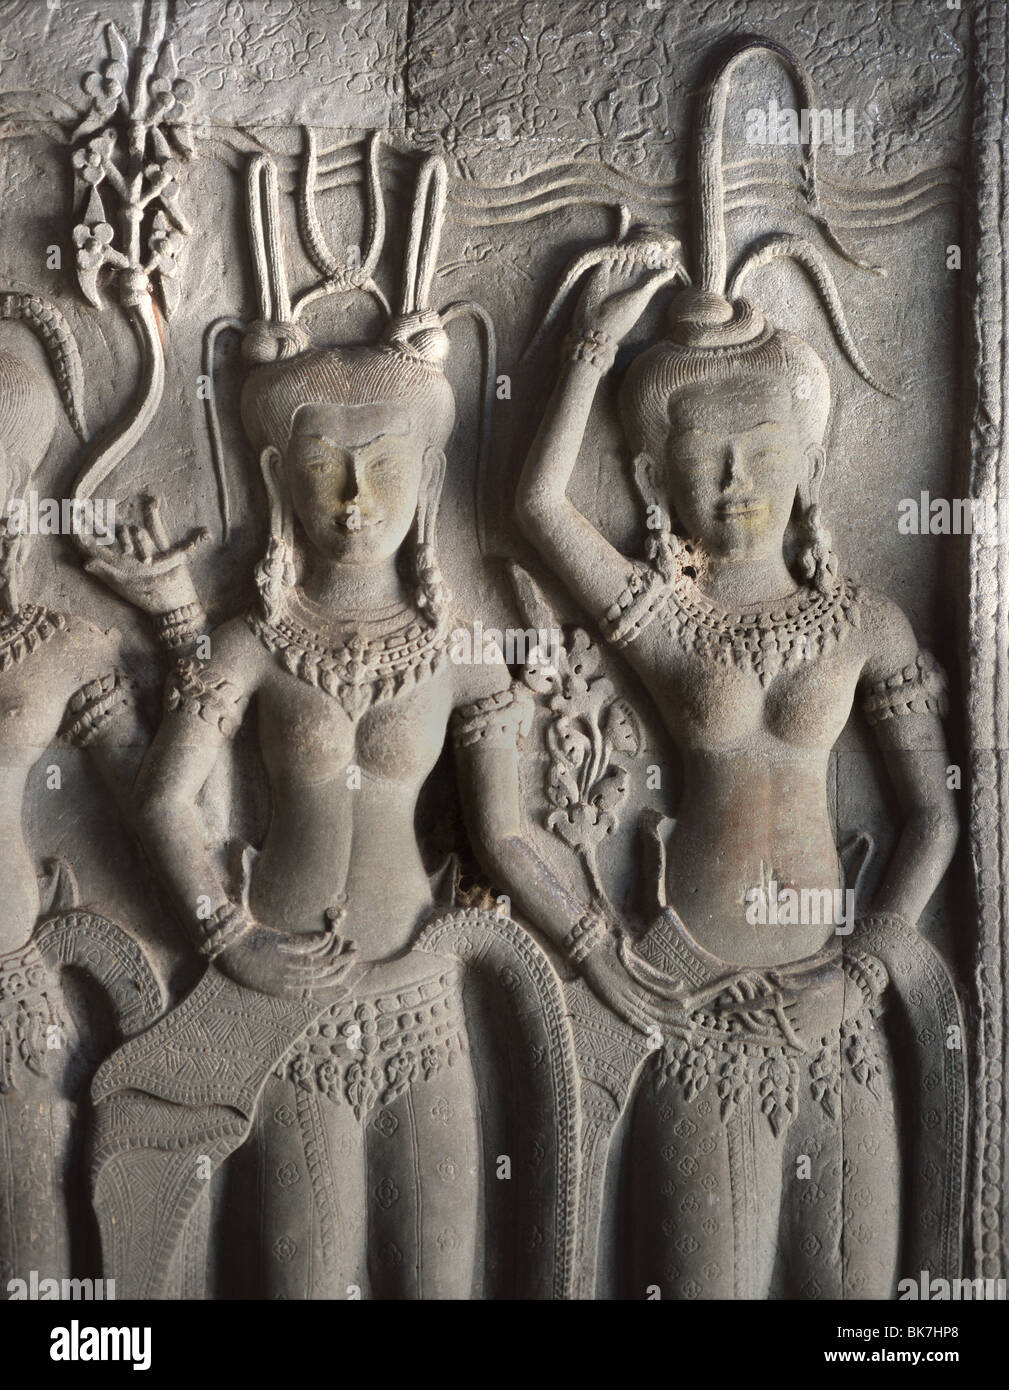 Detail of relief carvings of the 12th century, Angkor Wat, Angkor, UNESCO World Heritage Site, Cambodia - Stock Image